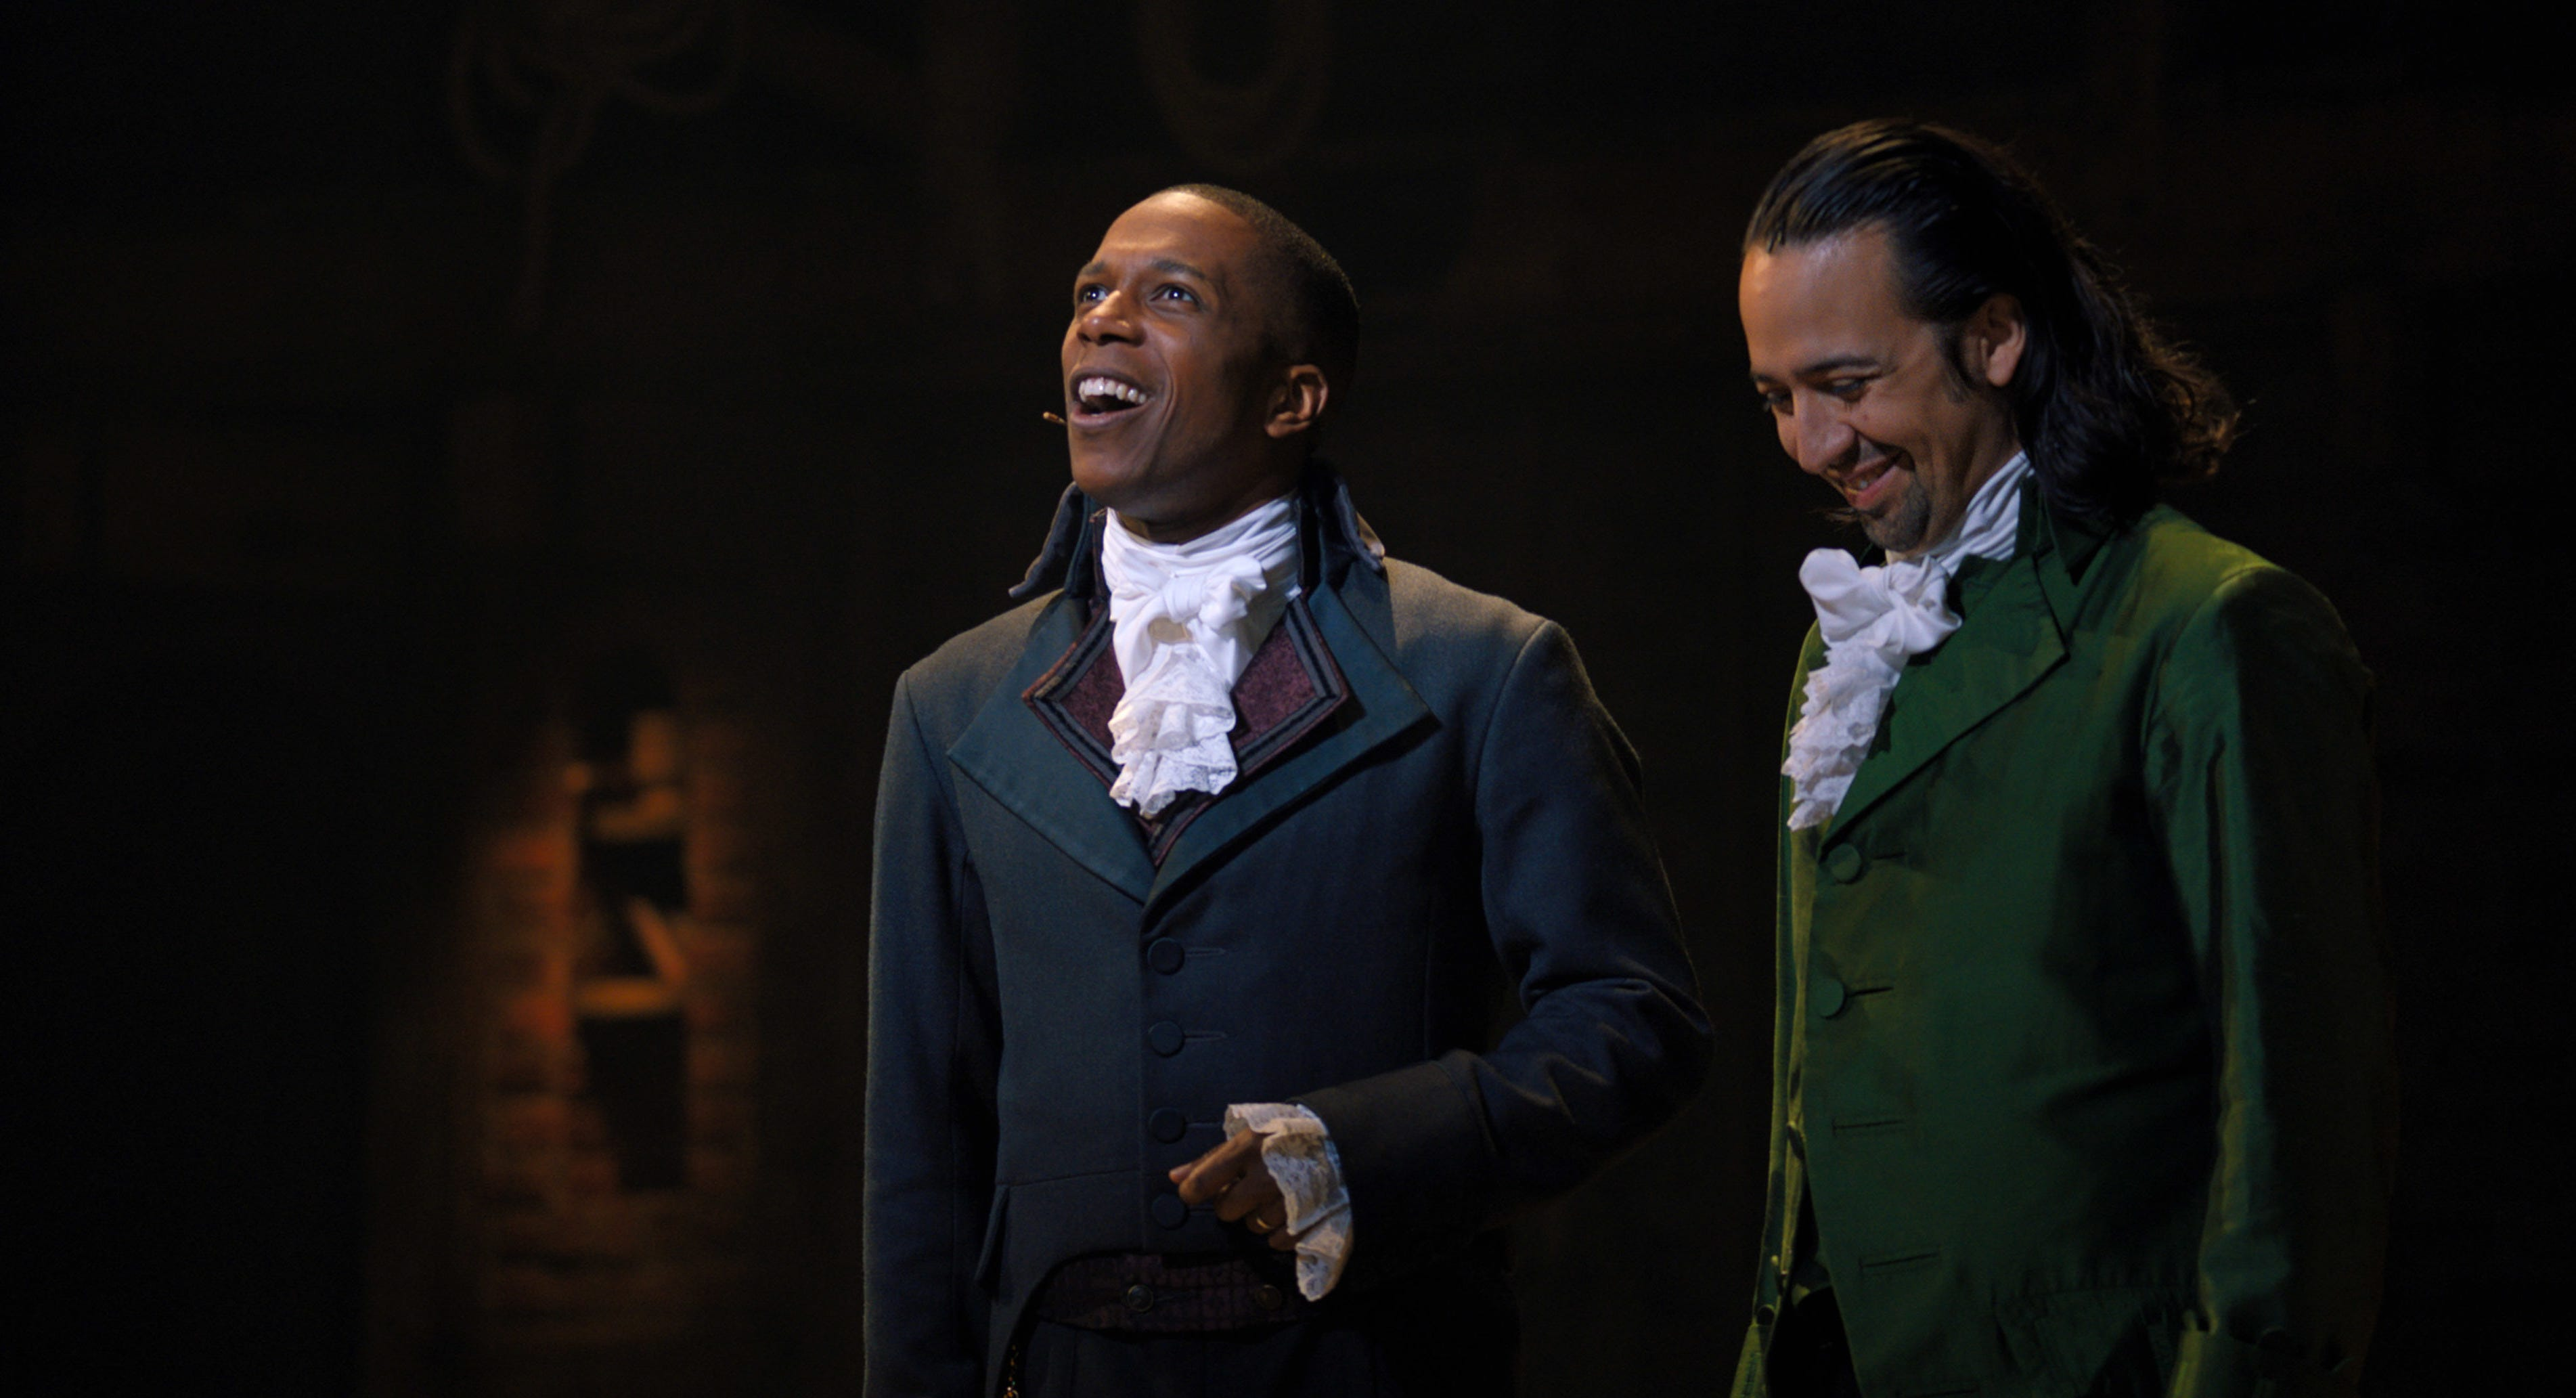 Hamilton The Outpost More New Movies To Stream For July 4